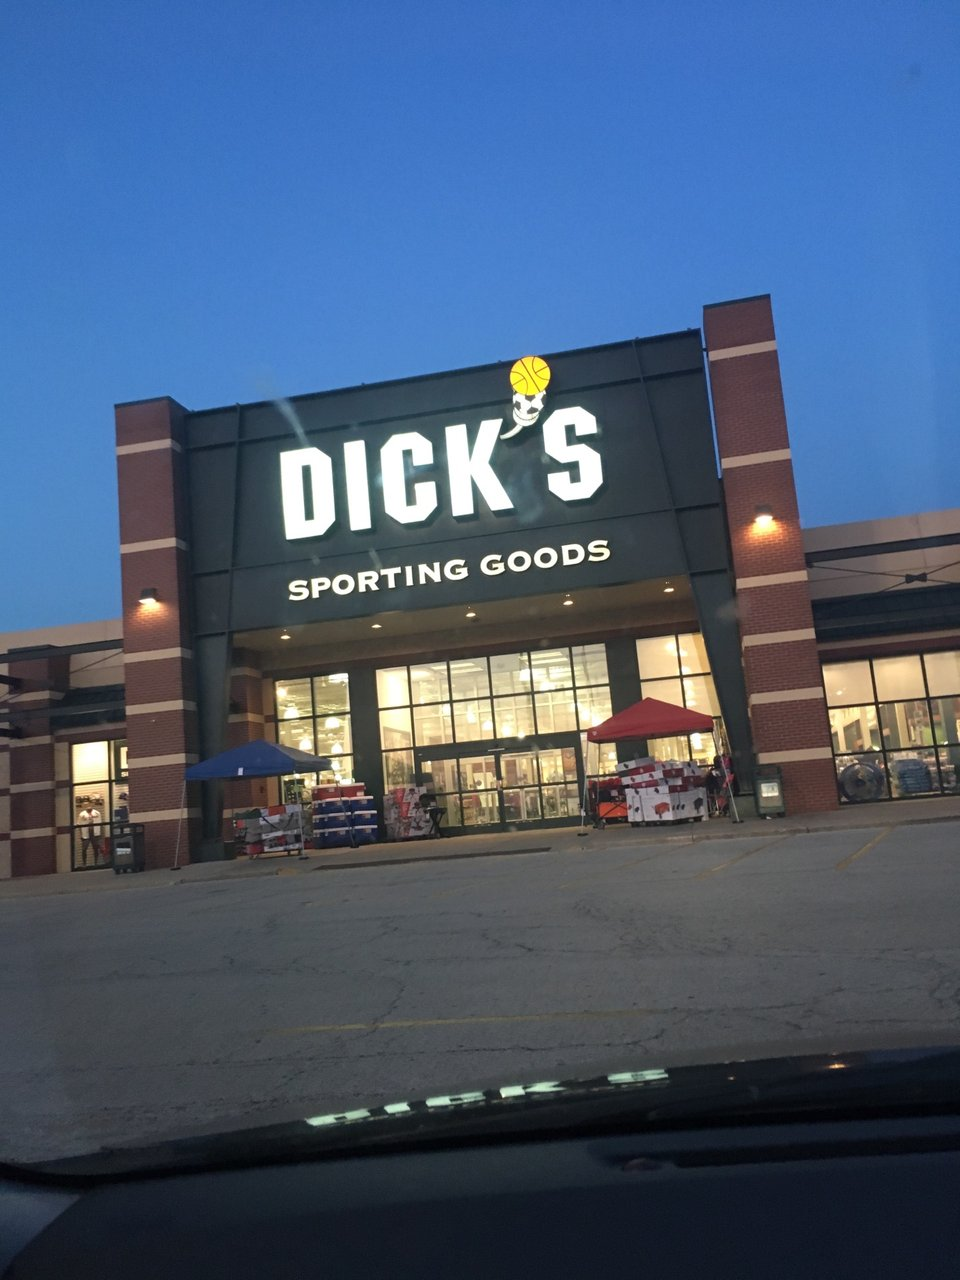 DICK'S Sporting Goods 2501 W Wabash Ave, Springfield